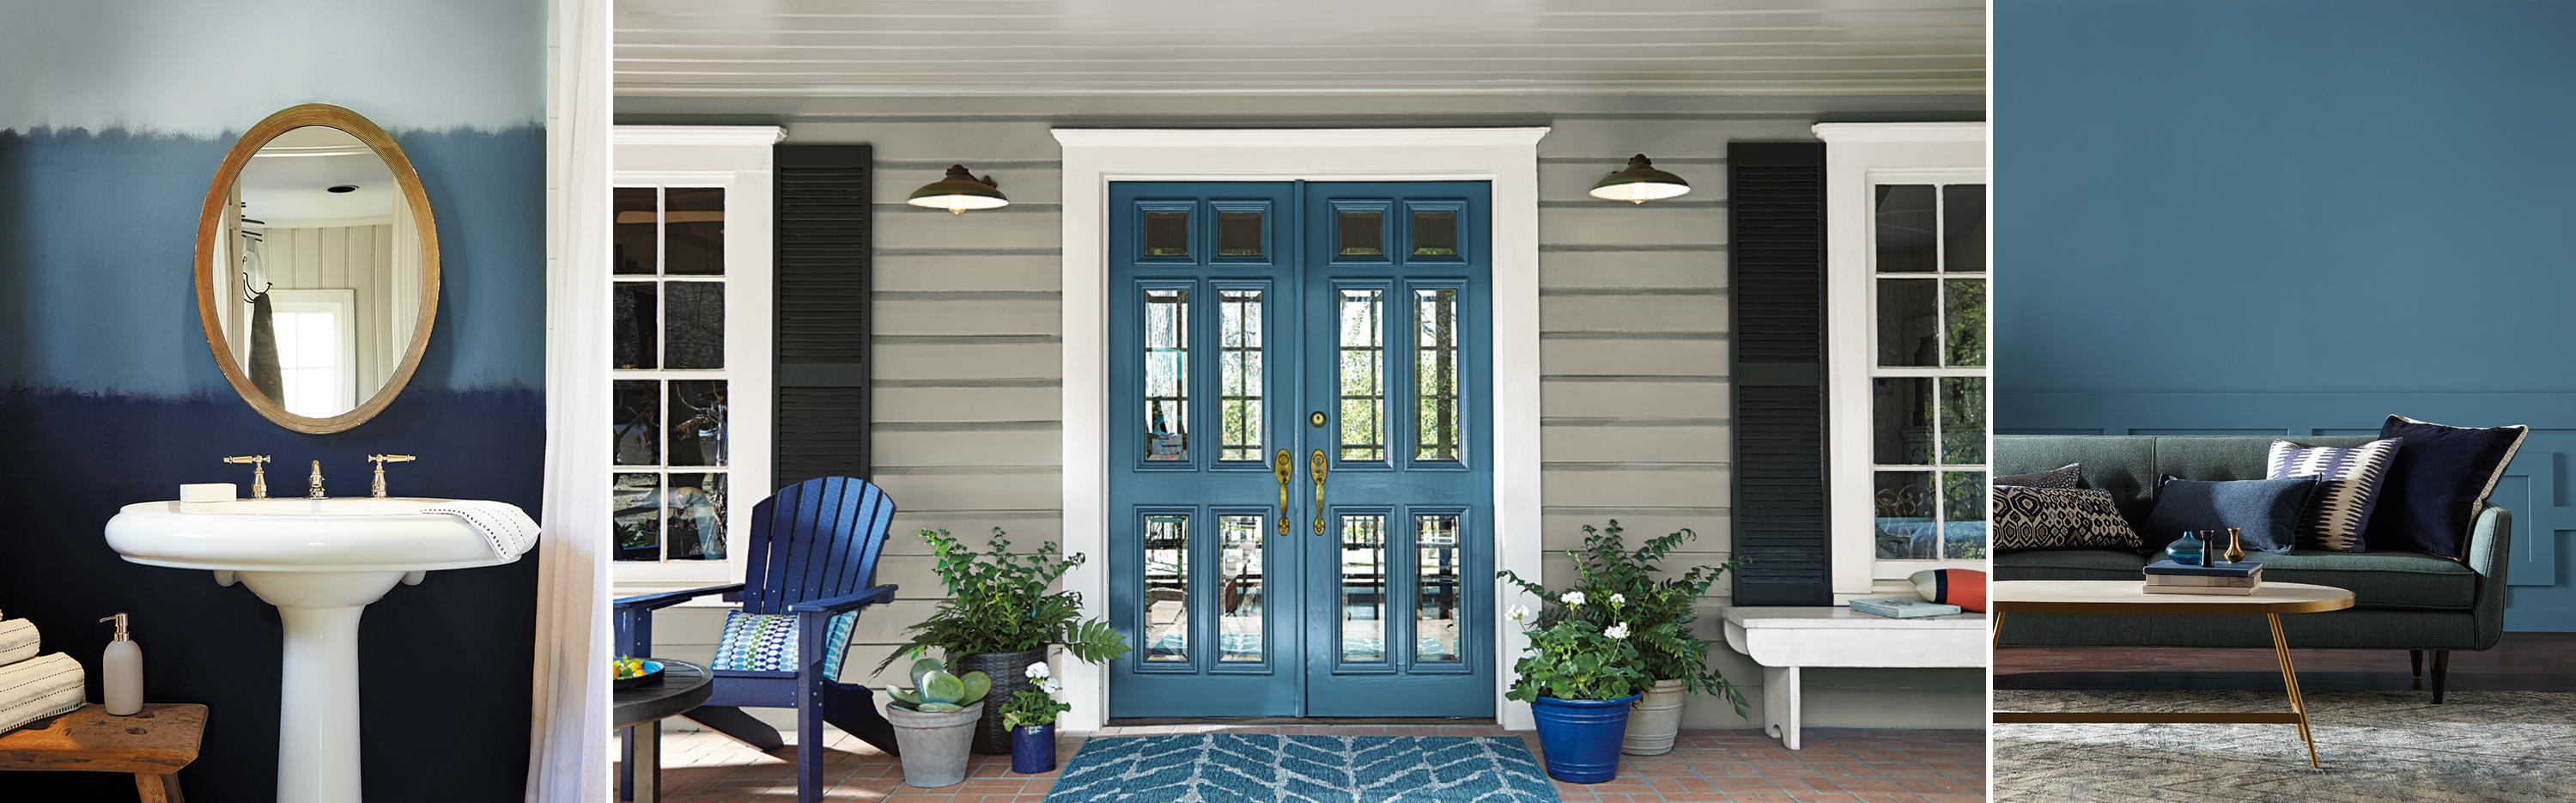 2019 color of the year blueprint by behr - 2019 home color trends ...